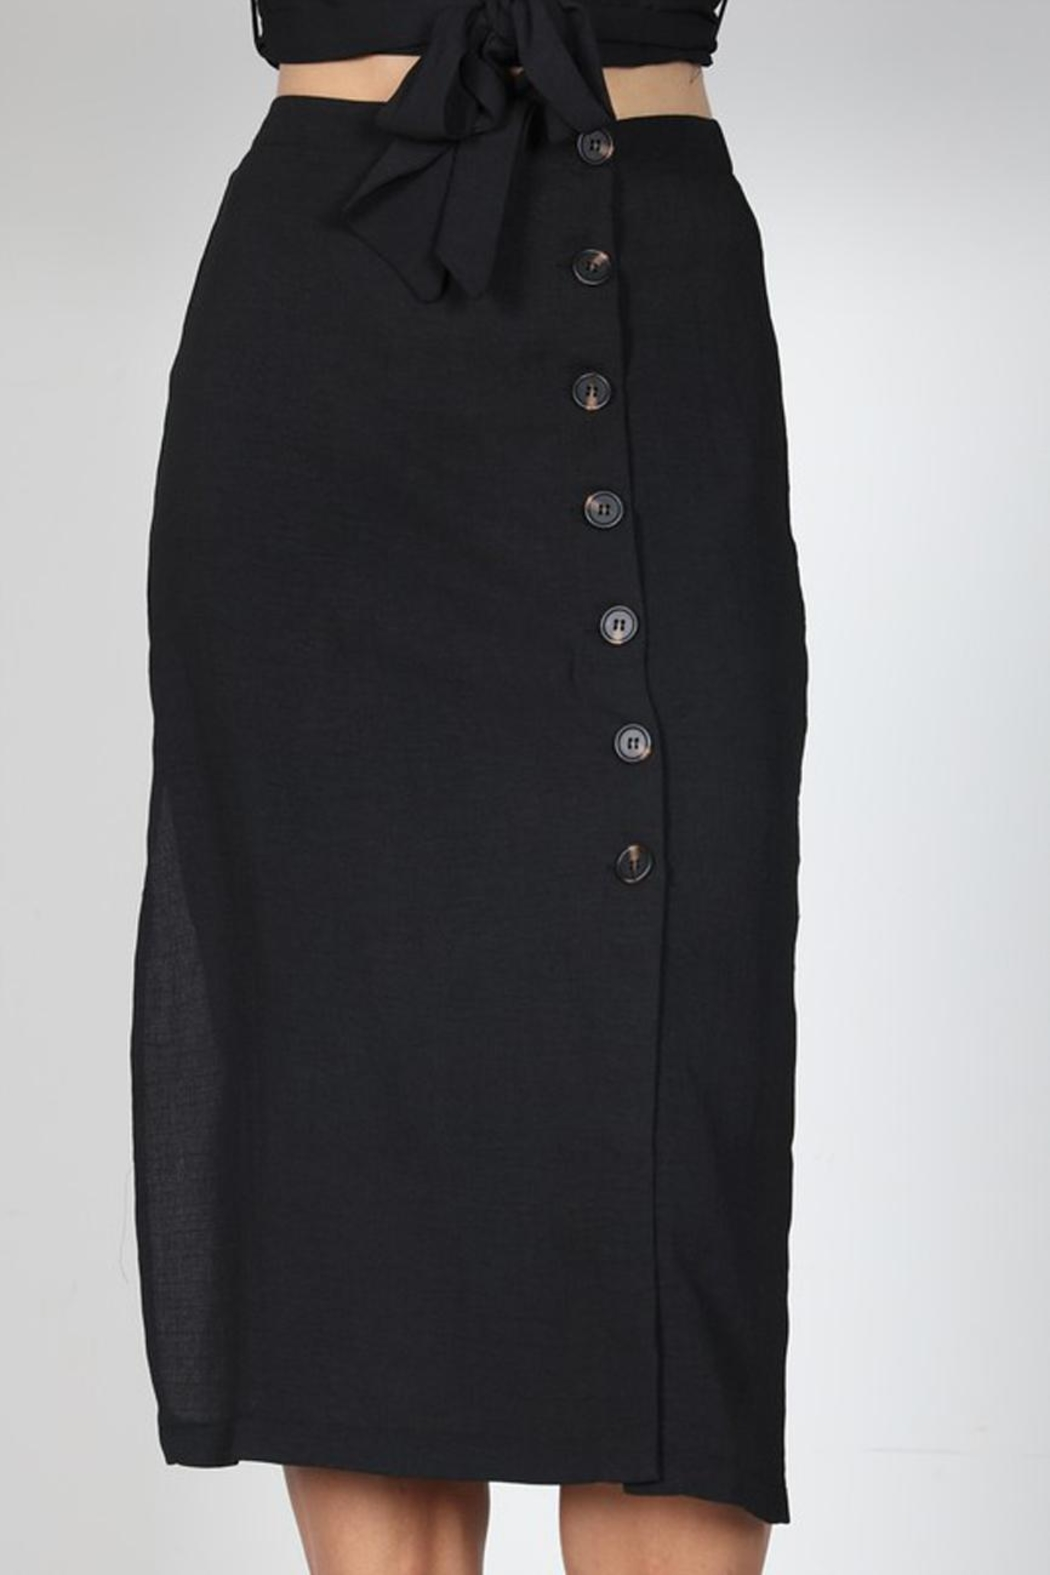 essue Black Button-Down Set - Back Cropped Image